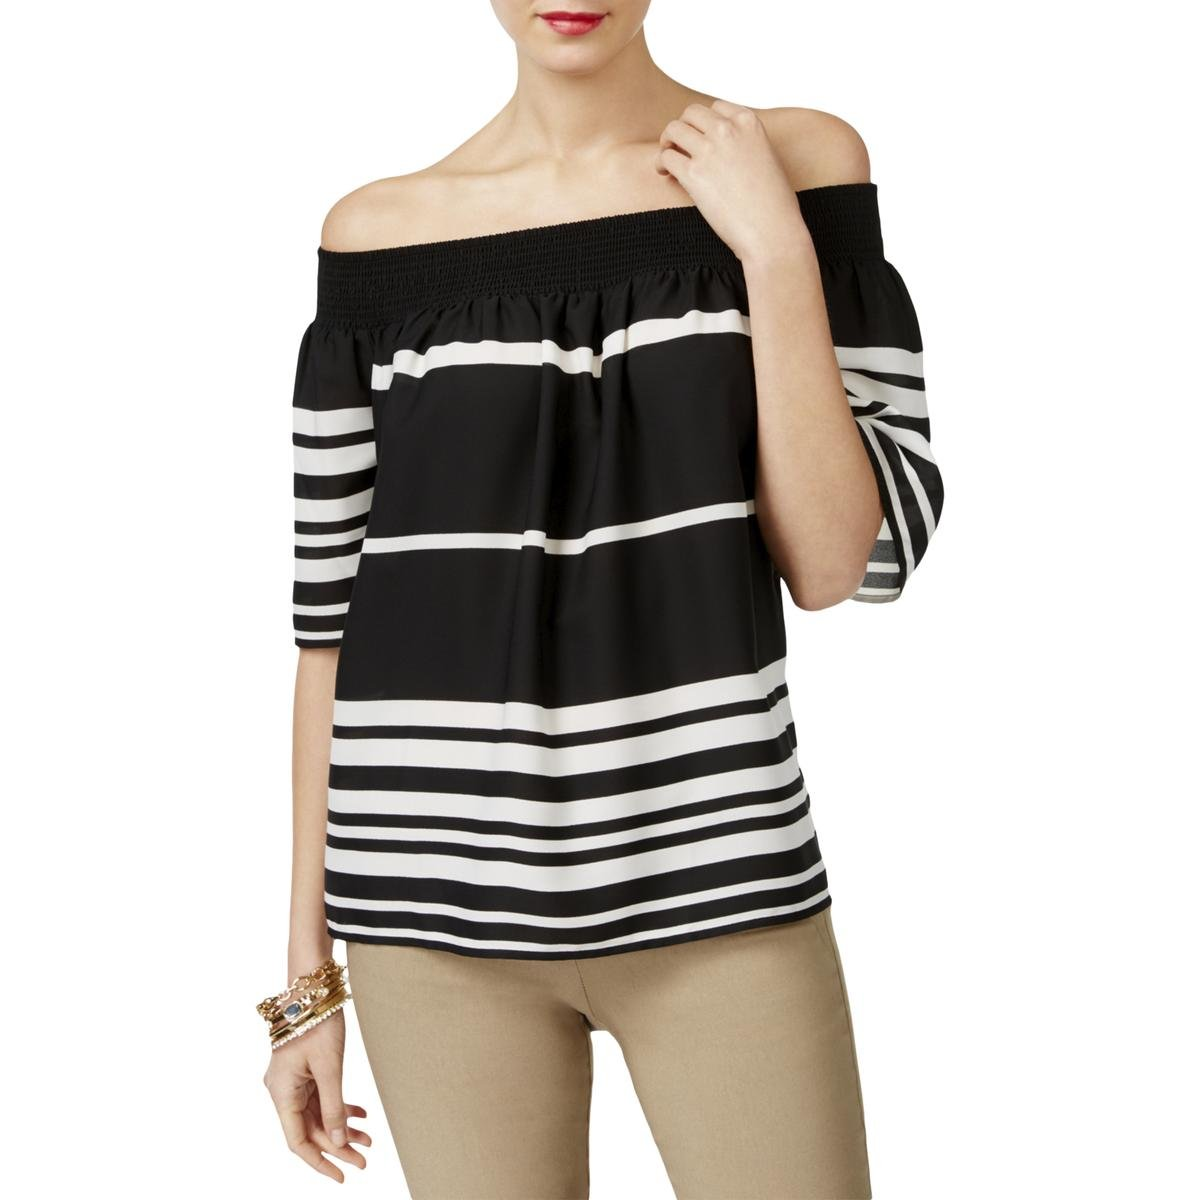 Inc Womens Striped Off-The-Shoulder Pullover Top 77218M899